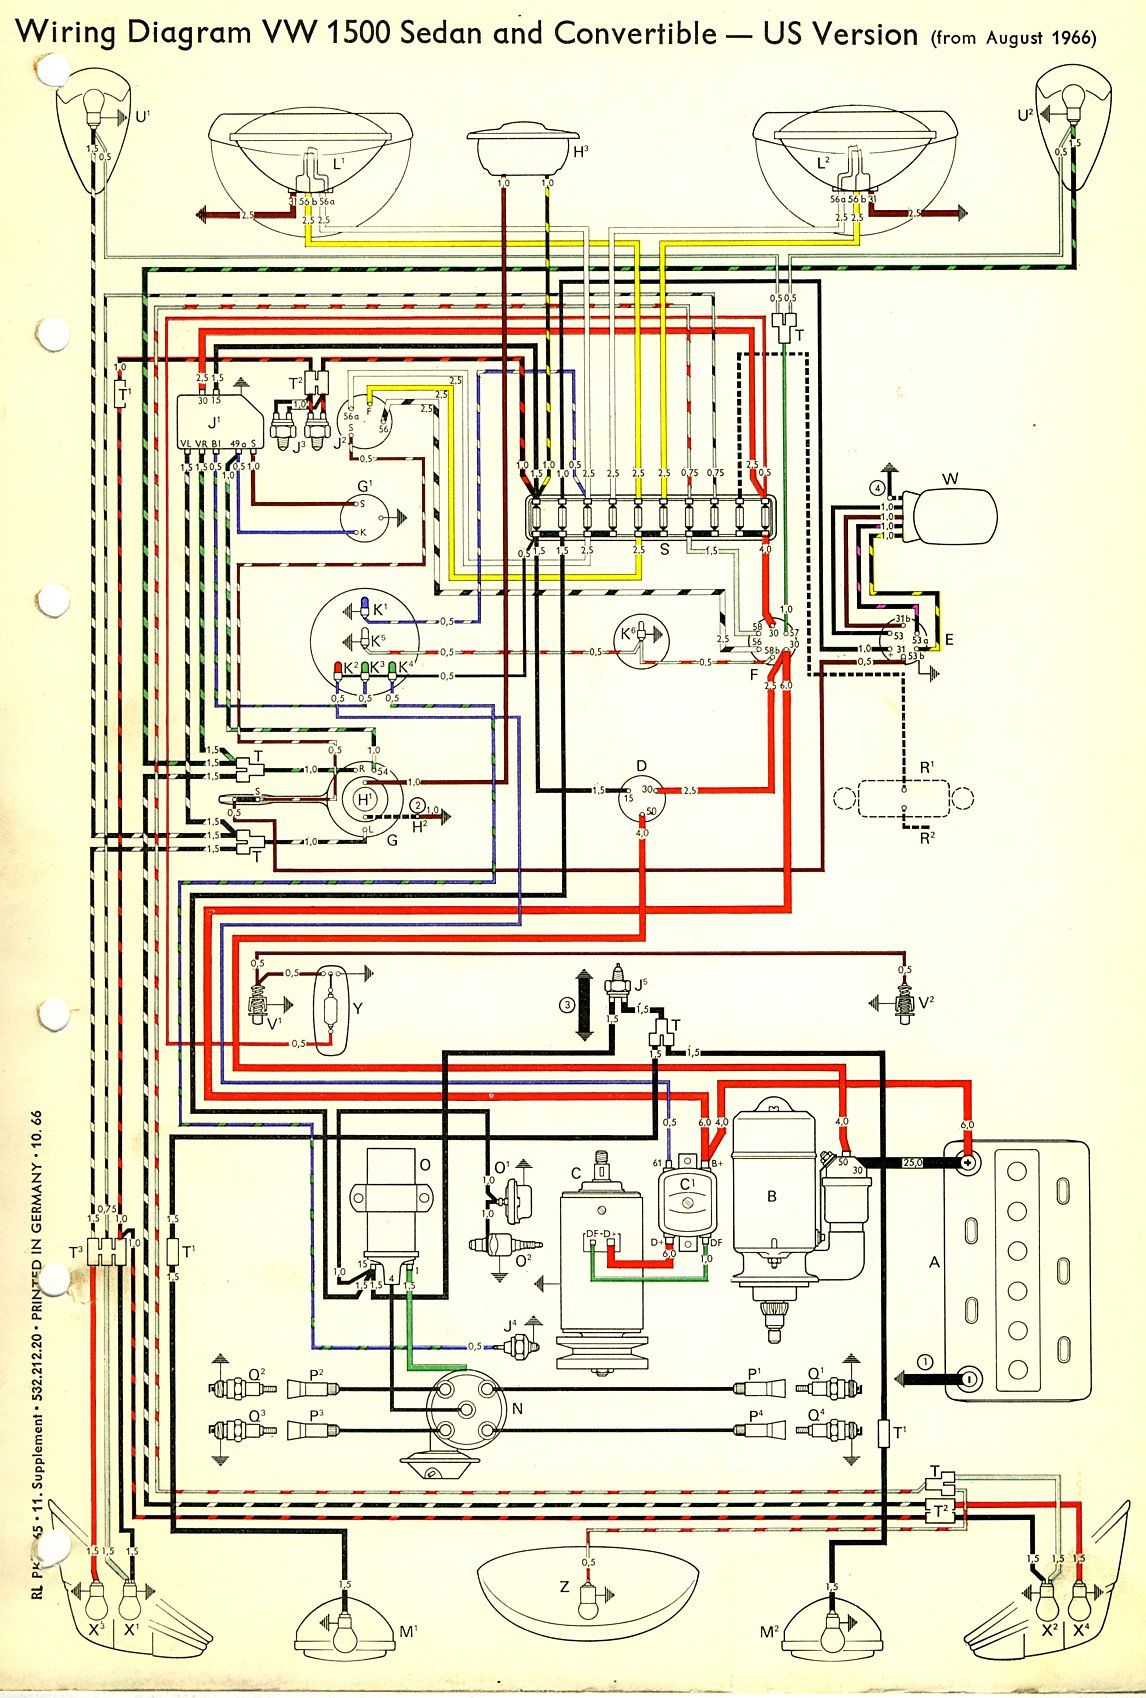 1adf990c0efb617c789fdd21338448b0 1967 beetle wiring diagram (usa) thegoldenbug com best 1967 vw vw beetle wiring diagram at cita.asia